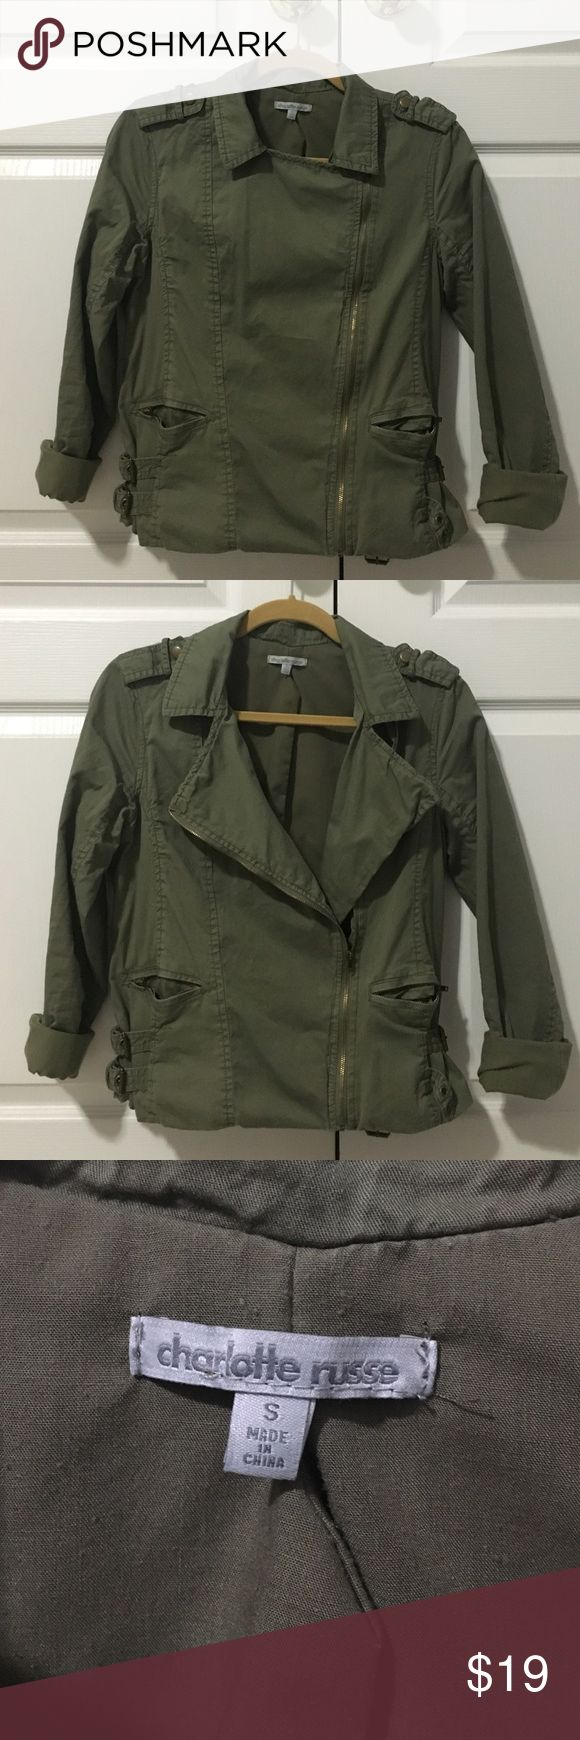 OLIVE GREEN jacket Only worn a few times, in pretty good condition. Size fits XS/S Charlotte Russe Jackets & Coats Utility Jackets